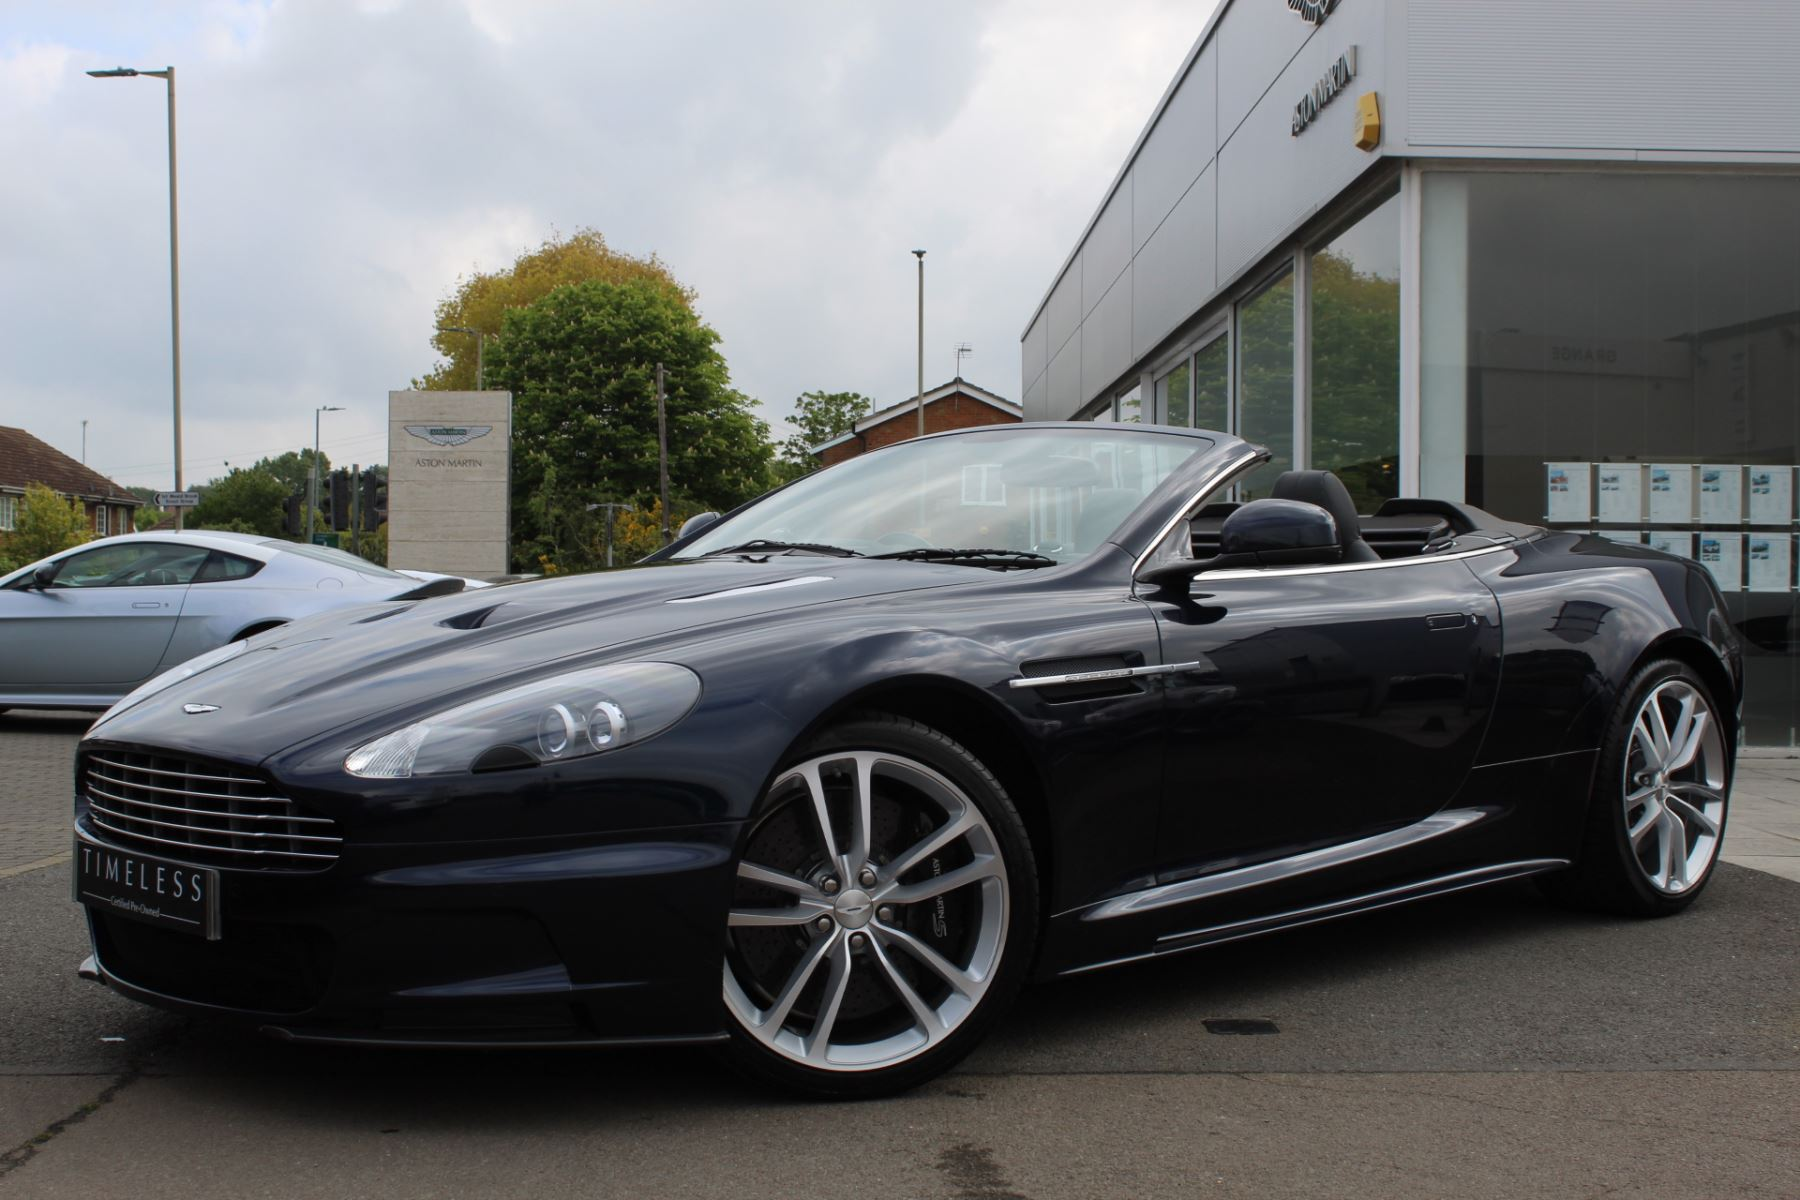 Aston Martin DBS V12 2dr Volante Touchtronic 5.9 Automatic Convertible (2010.75) image